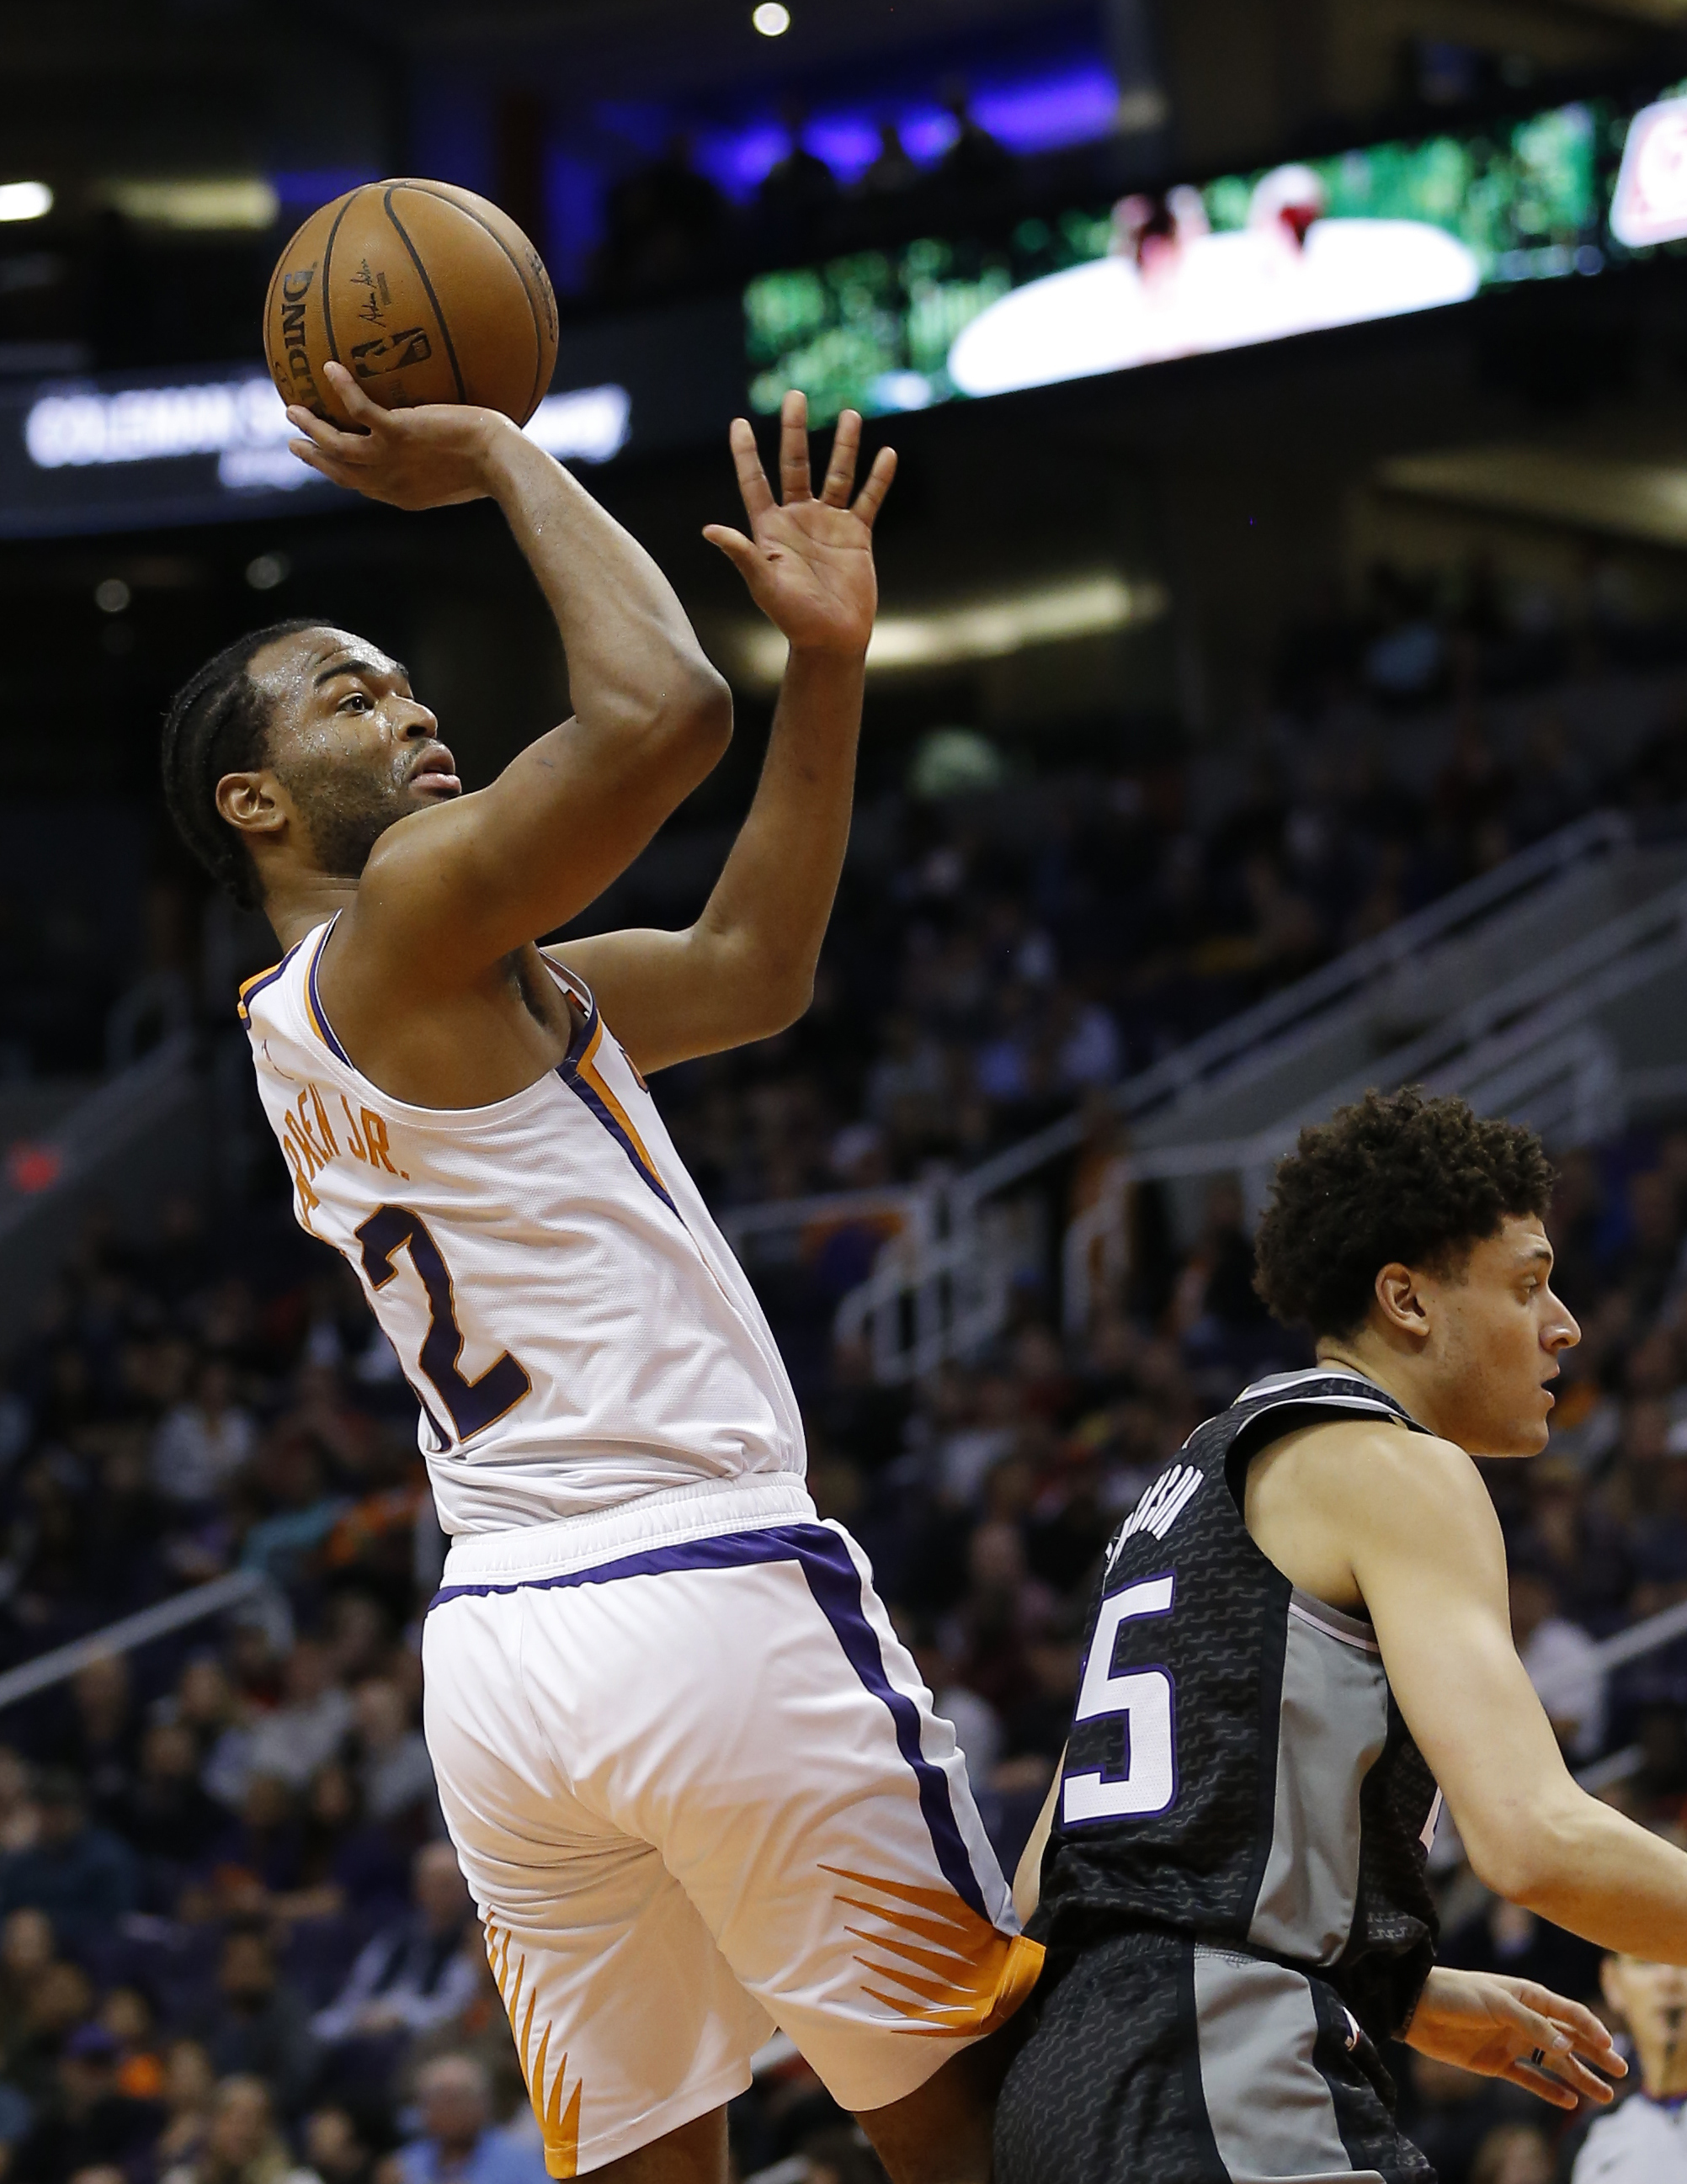 Oubre scores 26, Suns end skid with win over Kings 115-111